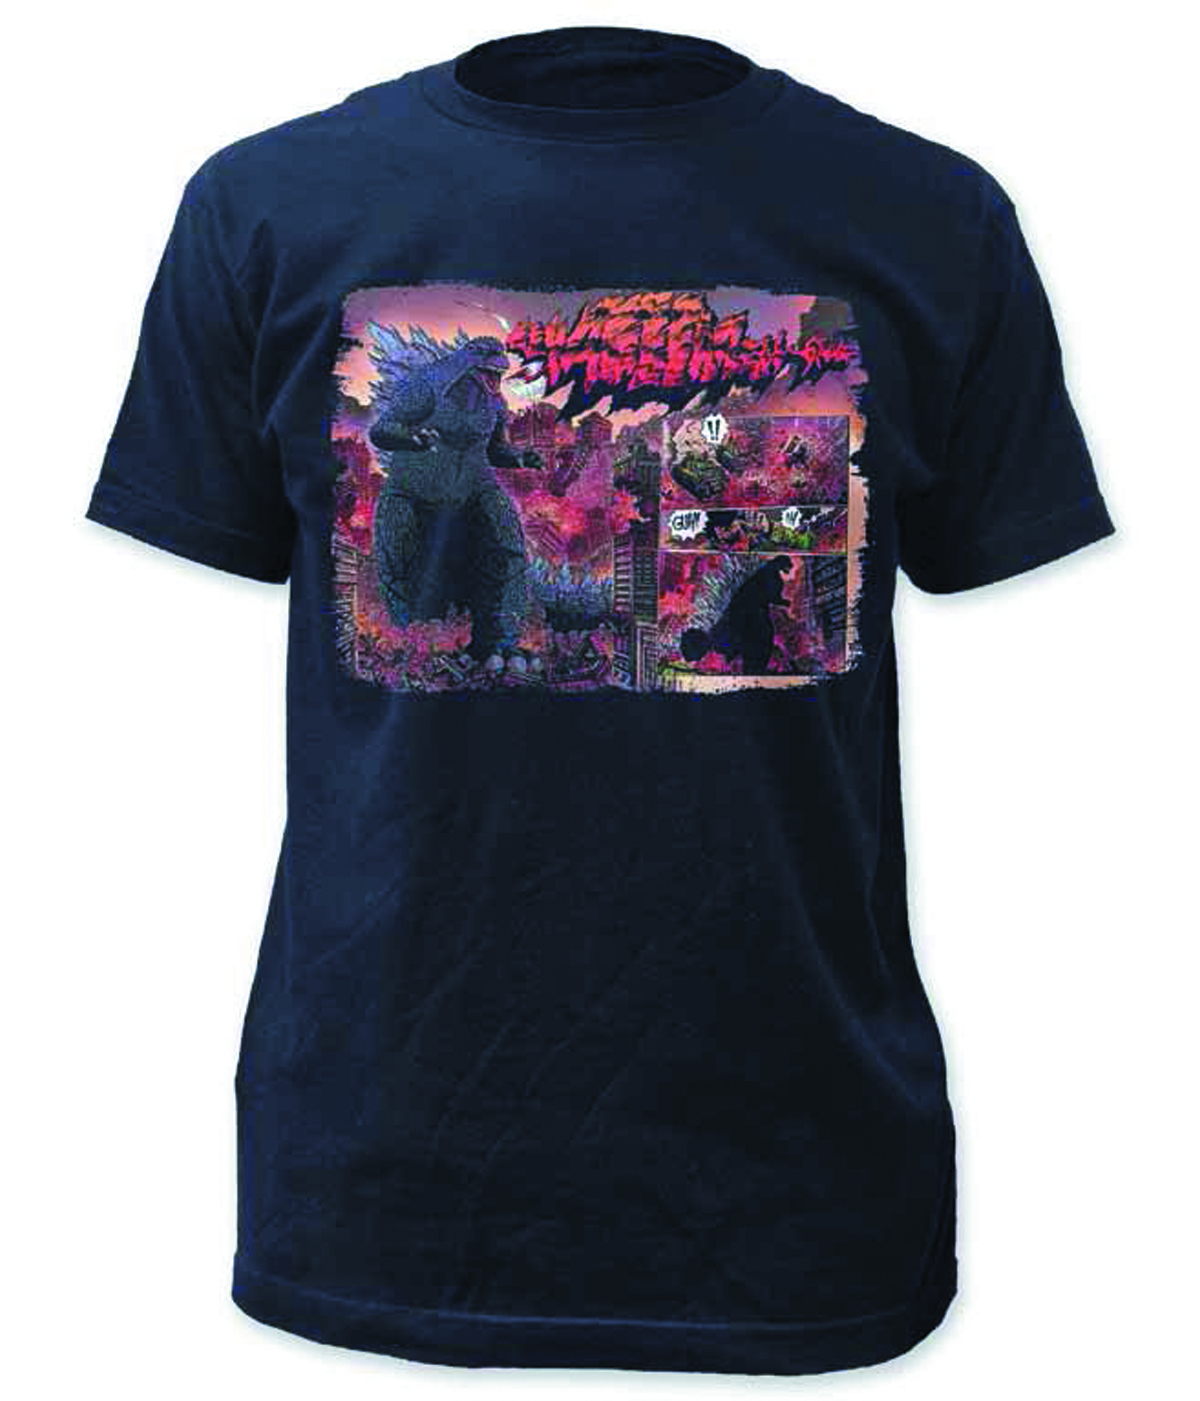 GODZILLA SCREAM CITY PX NAVY T/S XXL